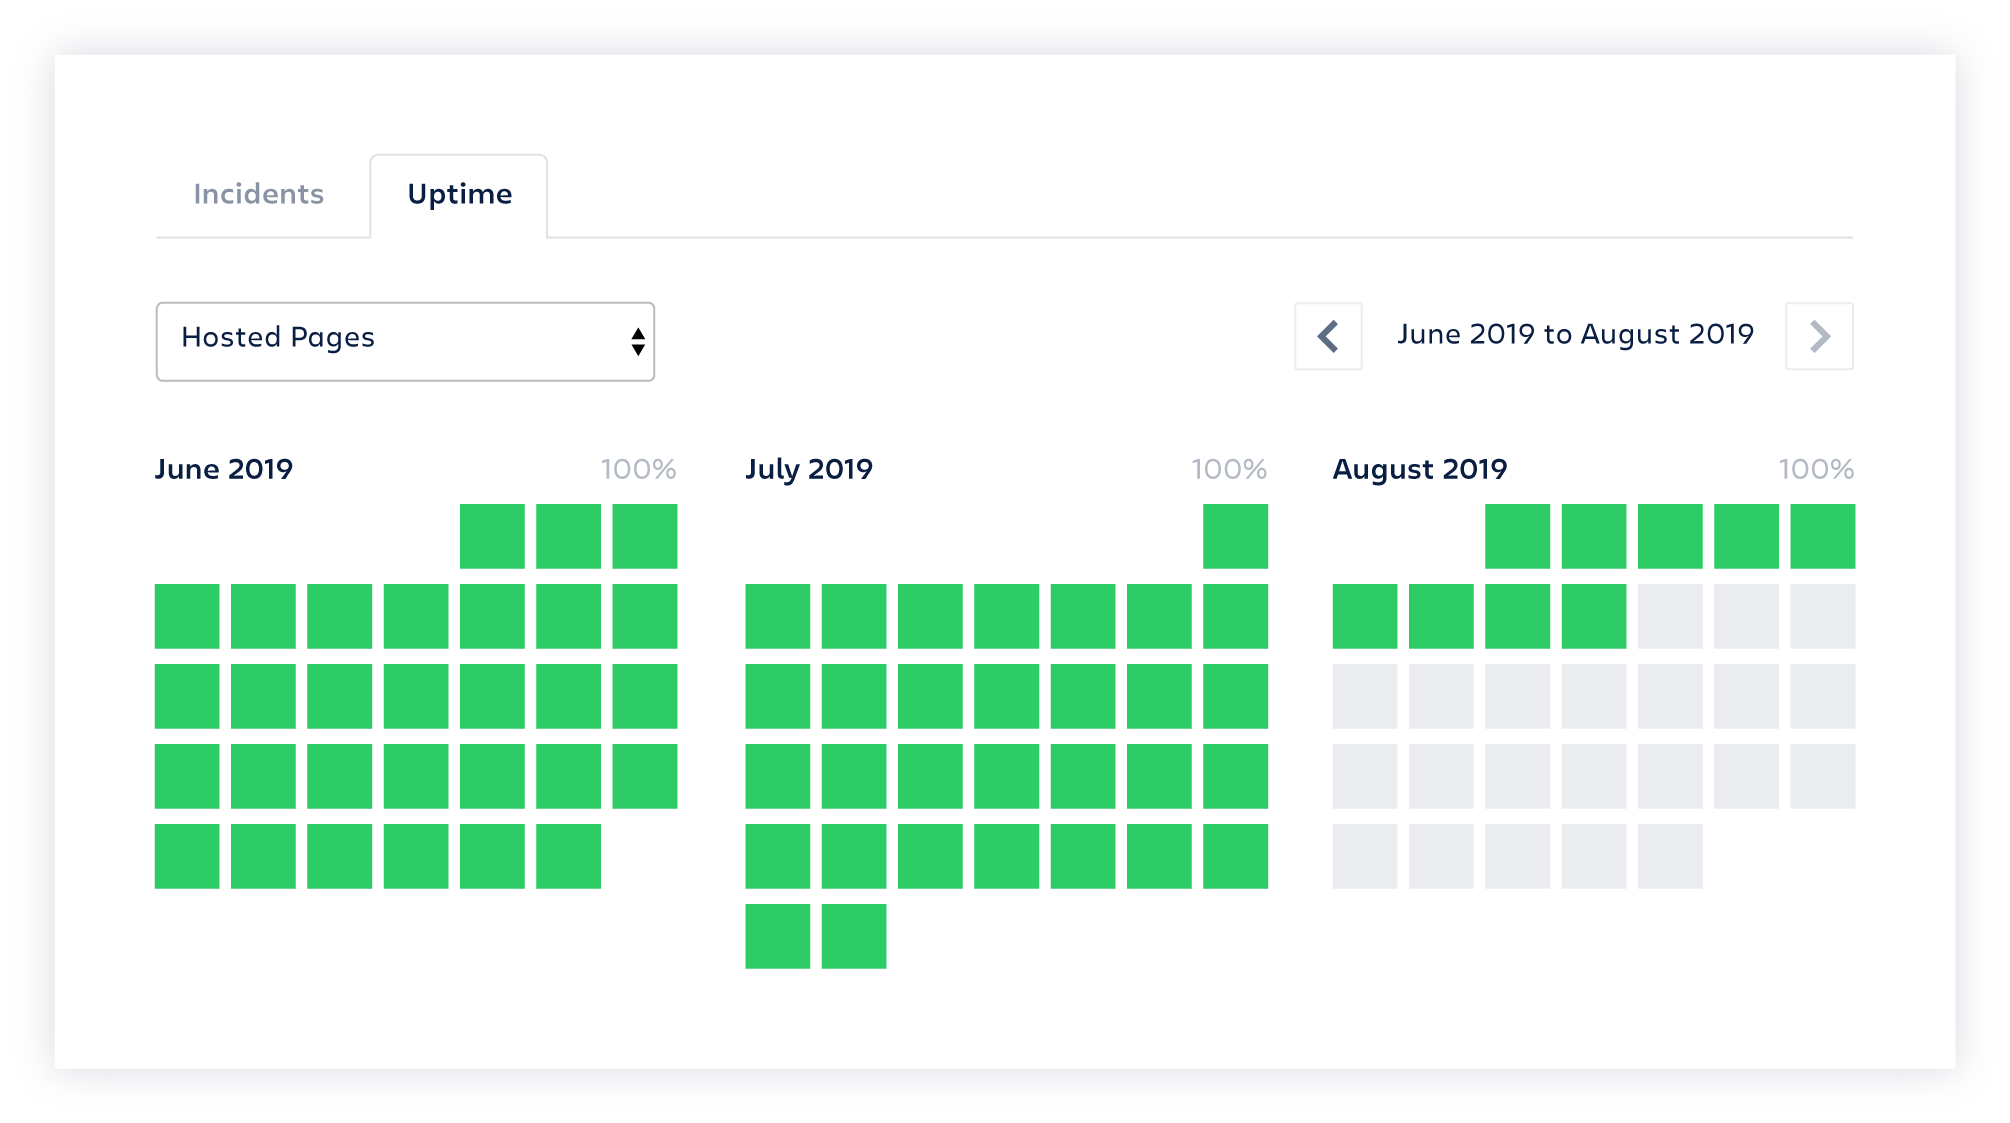 Calendar showing the days of uptime in green across various months